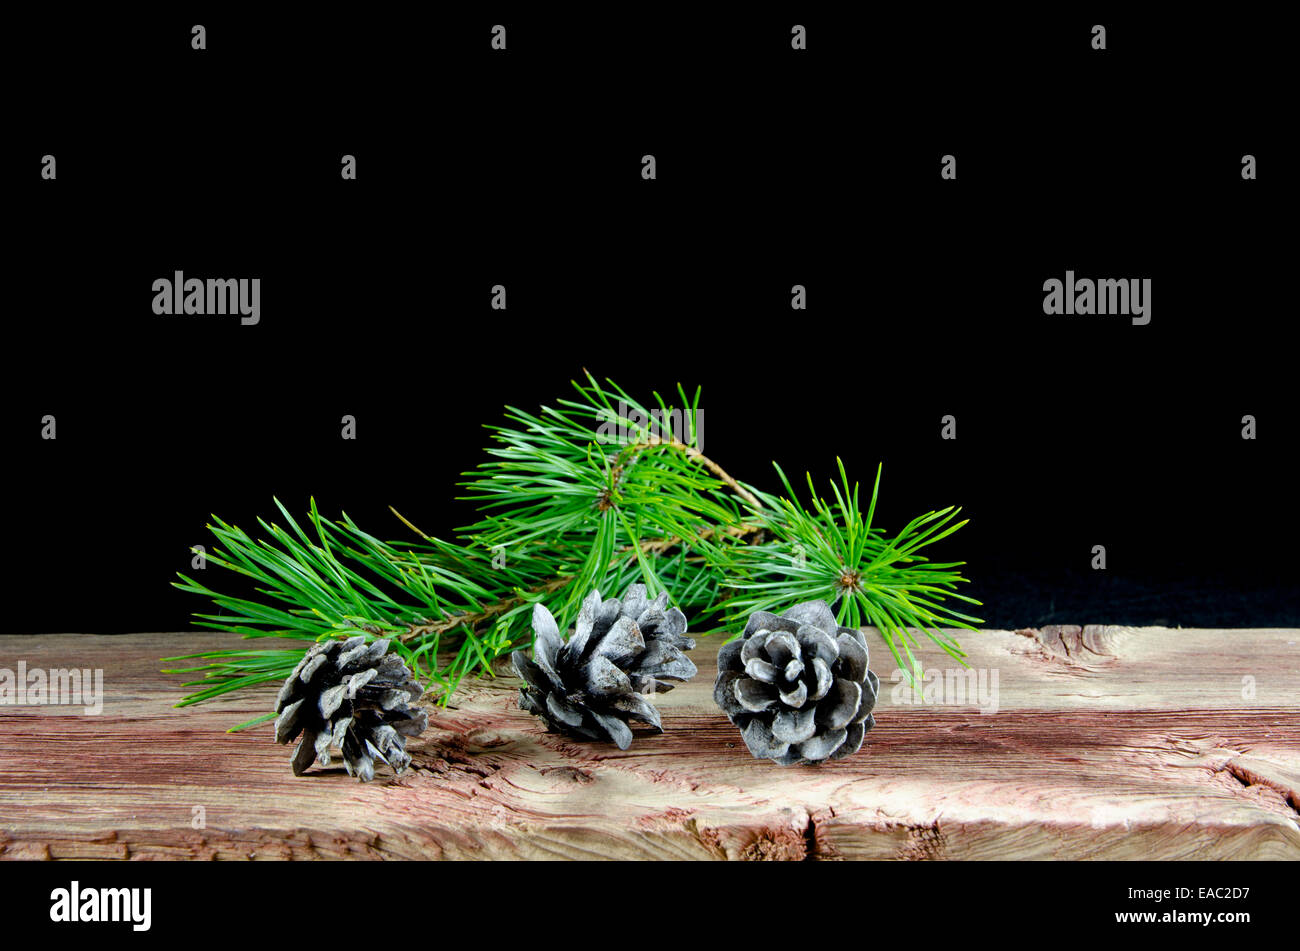 Three pine tree cones and a twig at an old weathered wooden table at black background - Stock Image